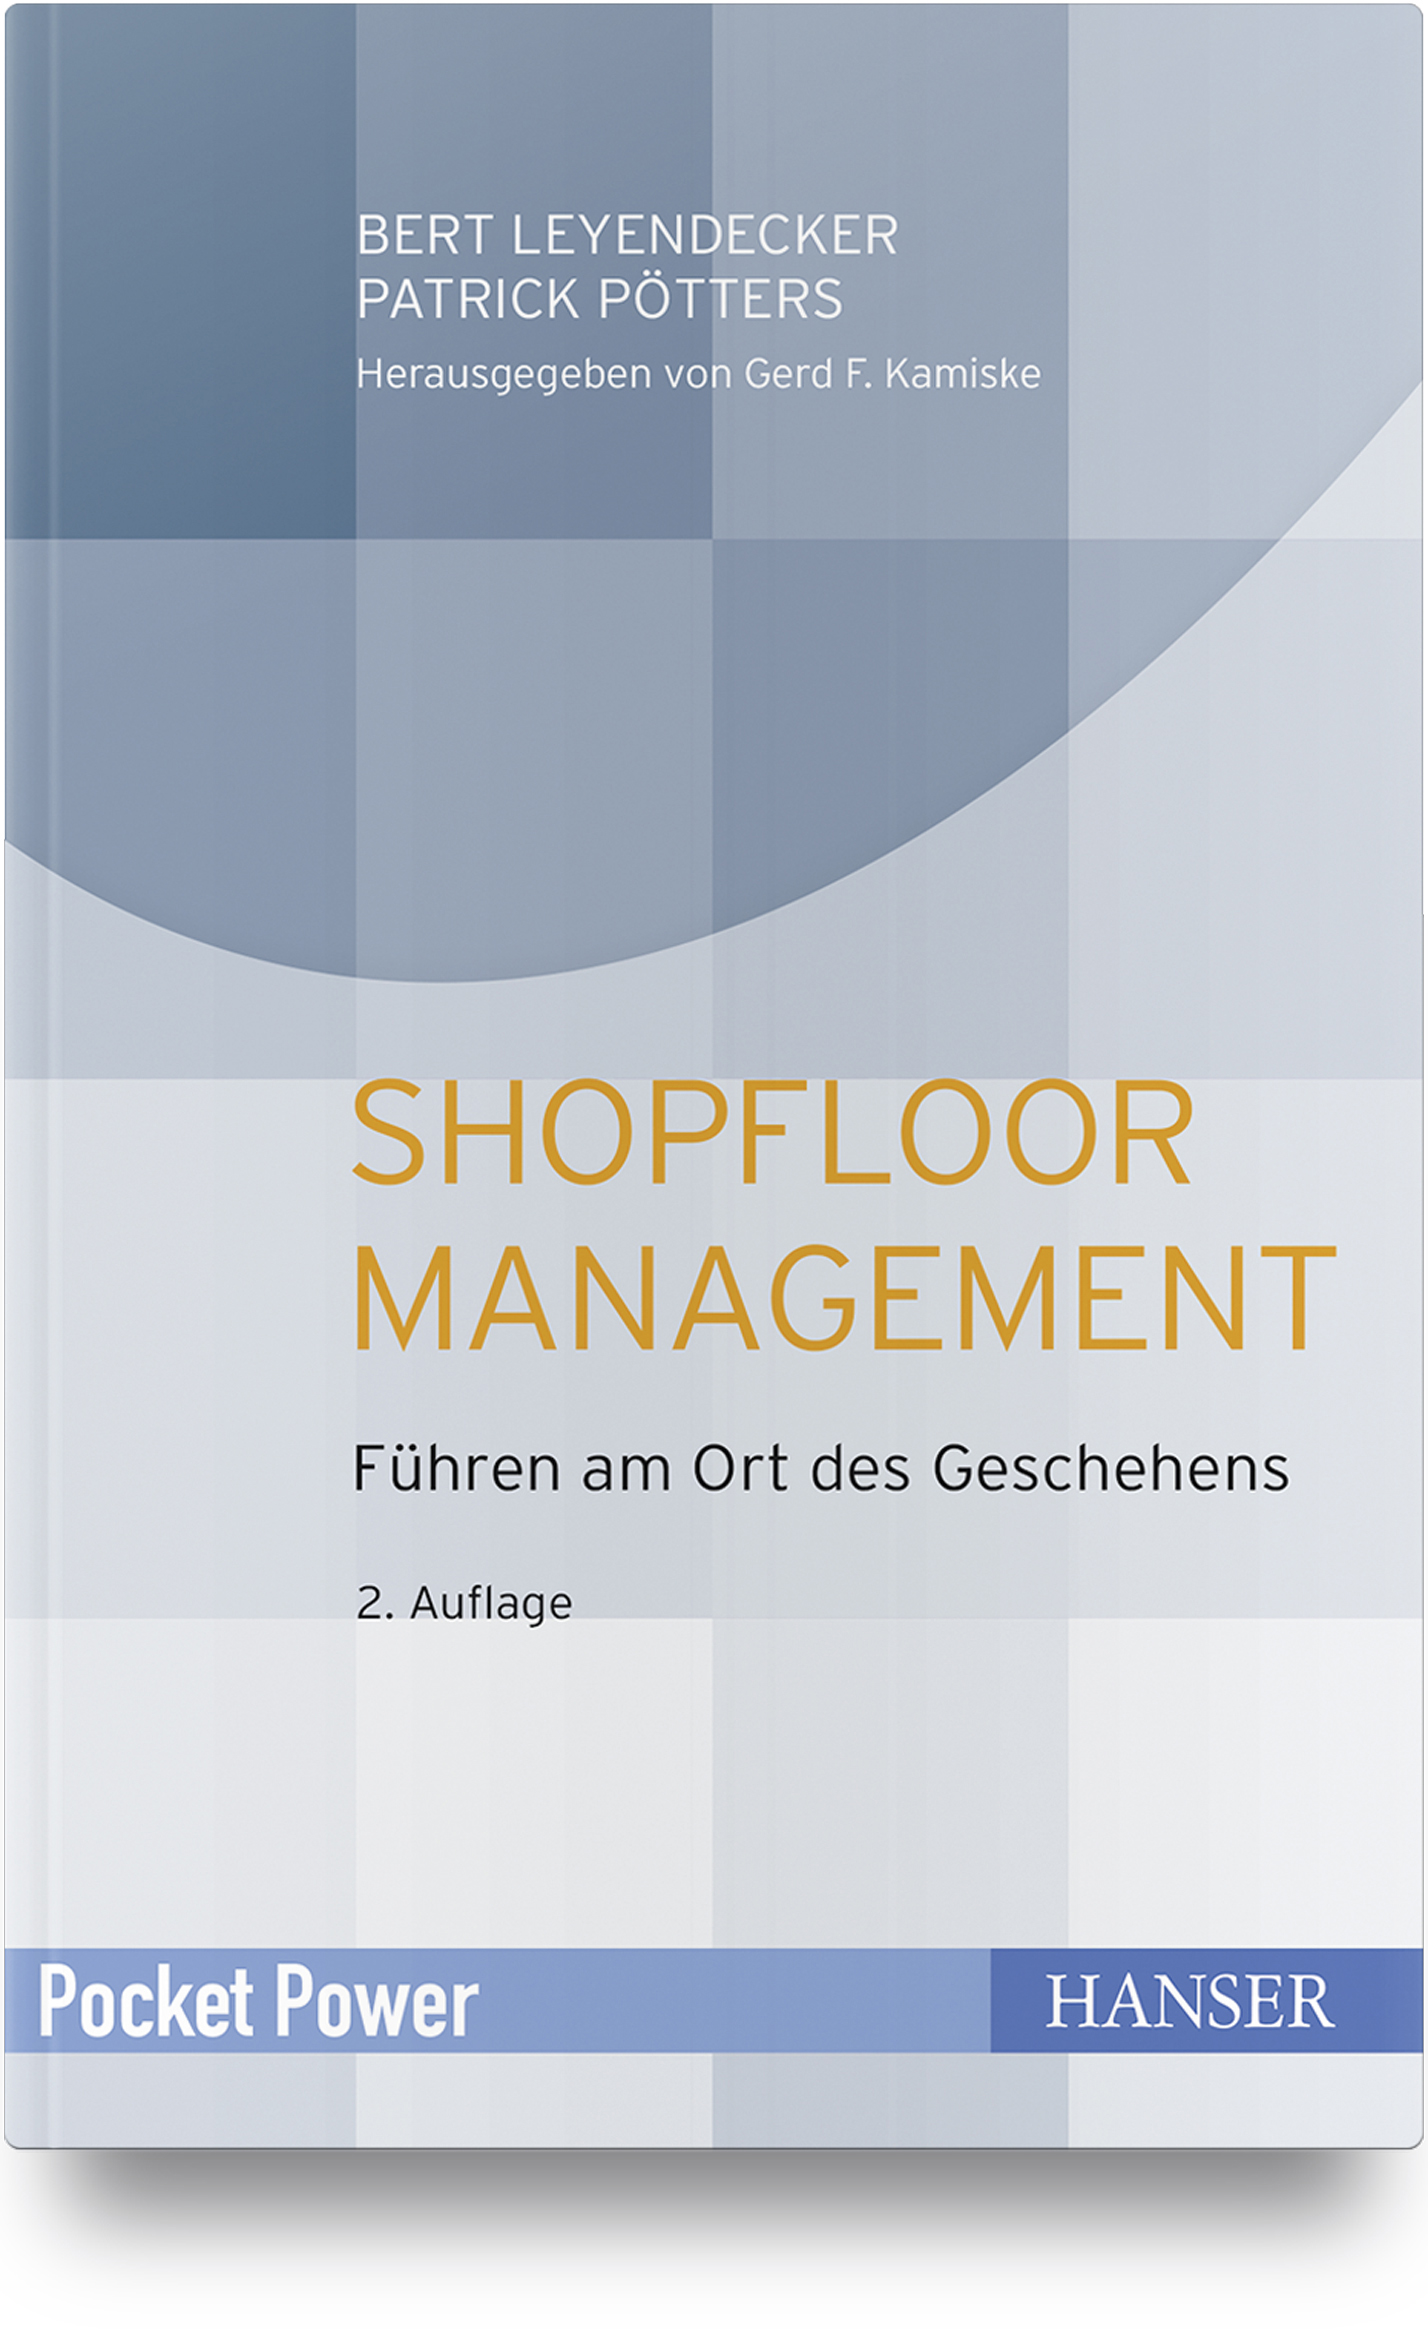 Leyendecker, Pötters, Shopfloor Management, 978-3-446-46375-2